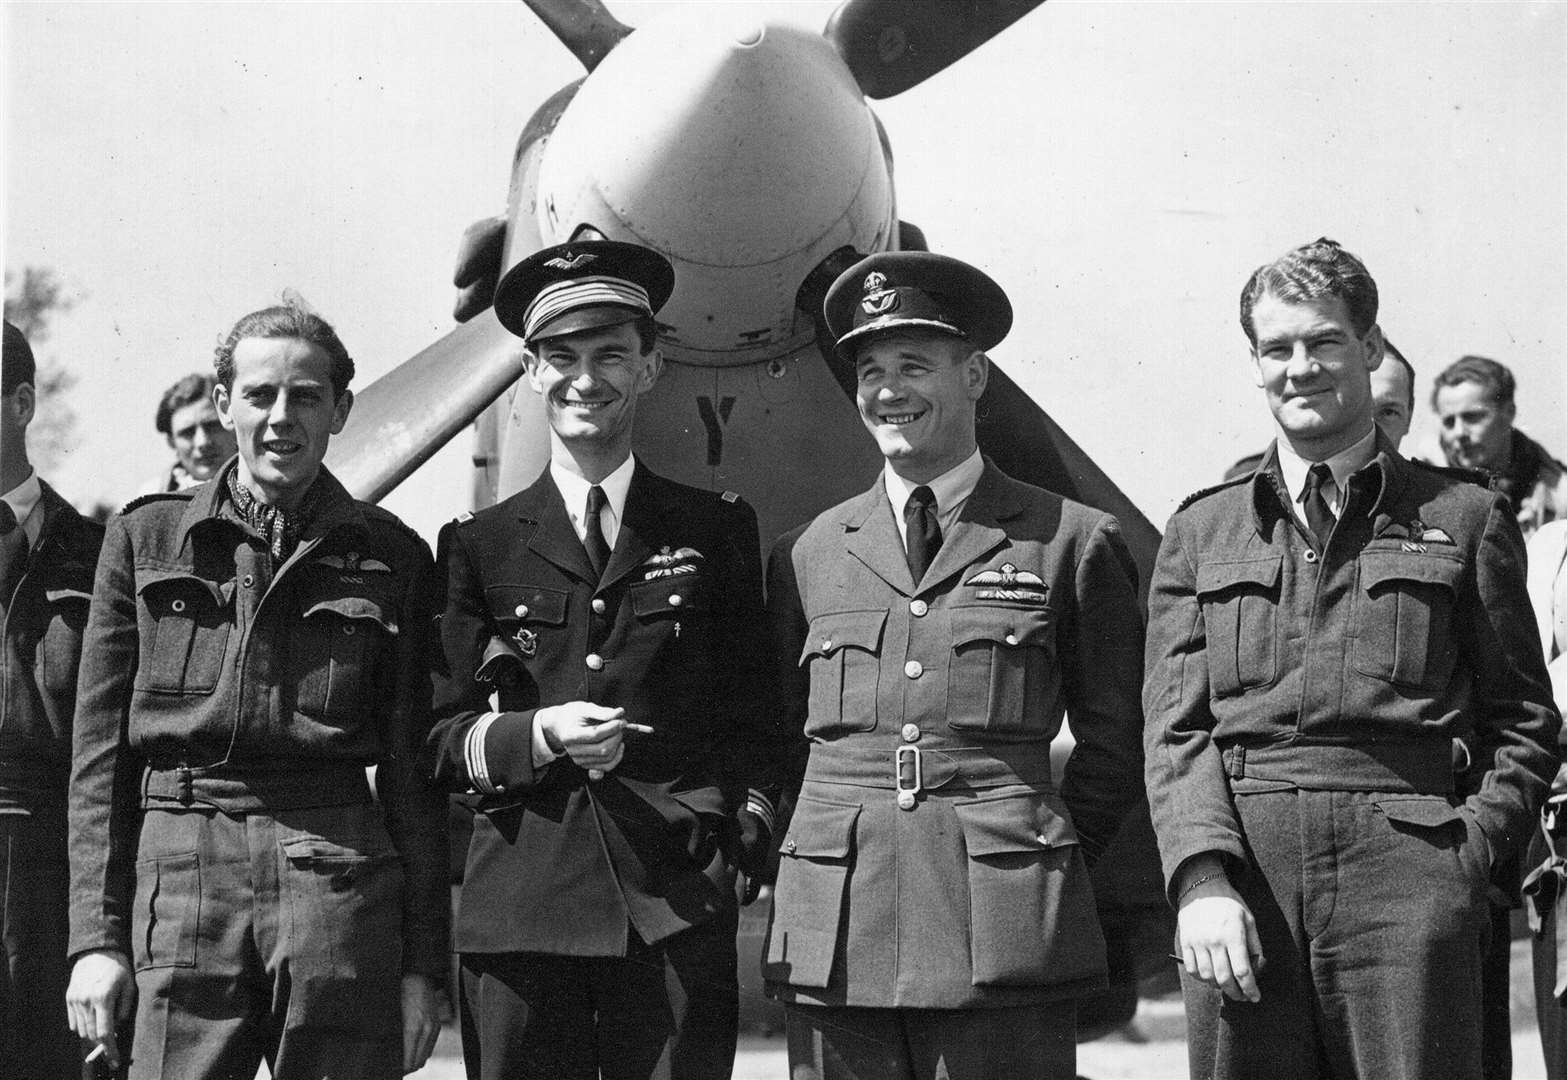 New book tells the real story behind elite RAF training school at Sutton Bridge